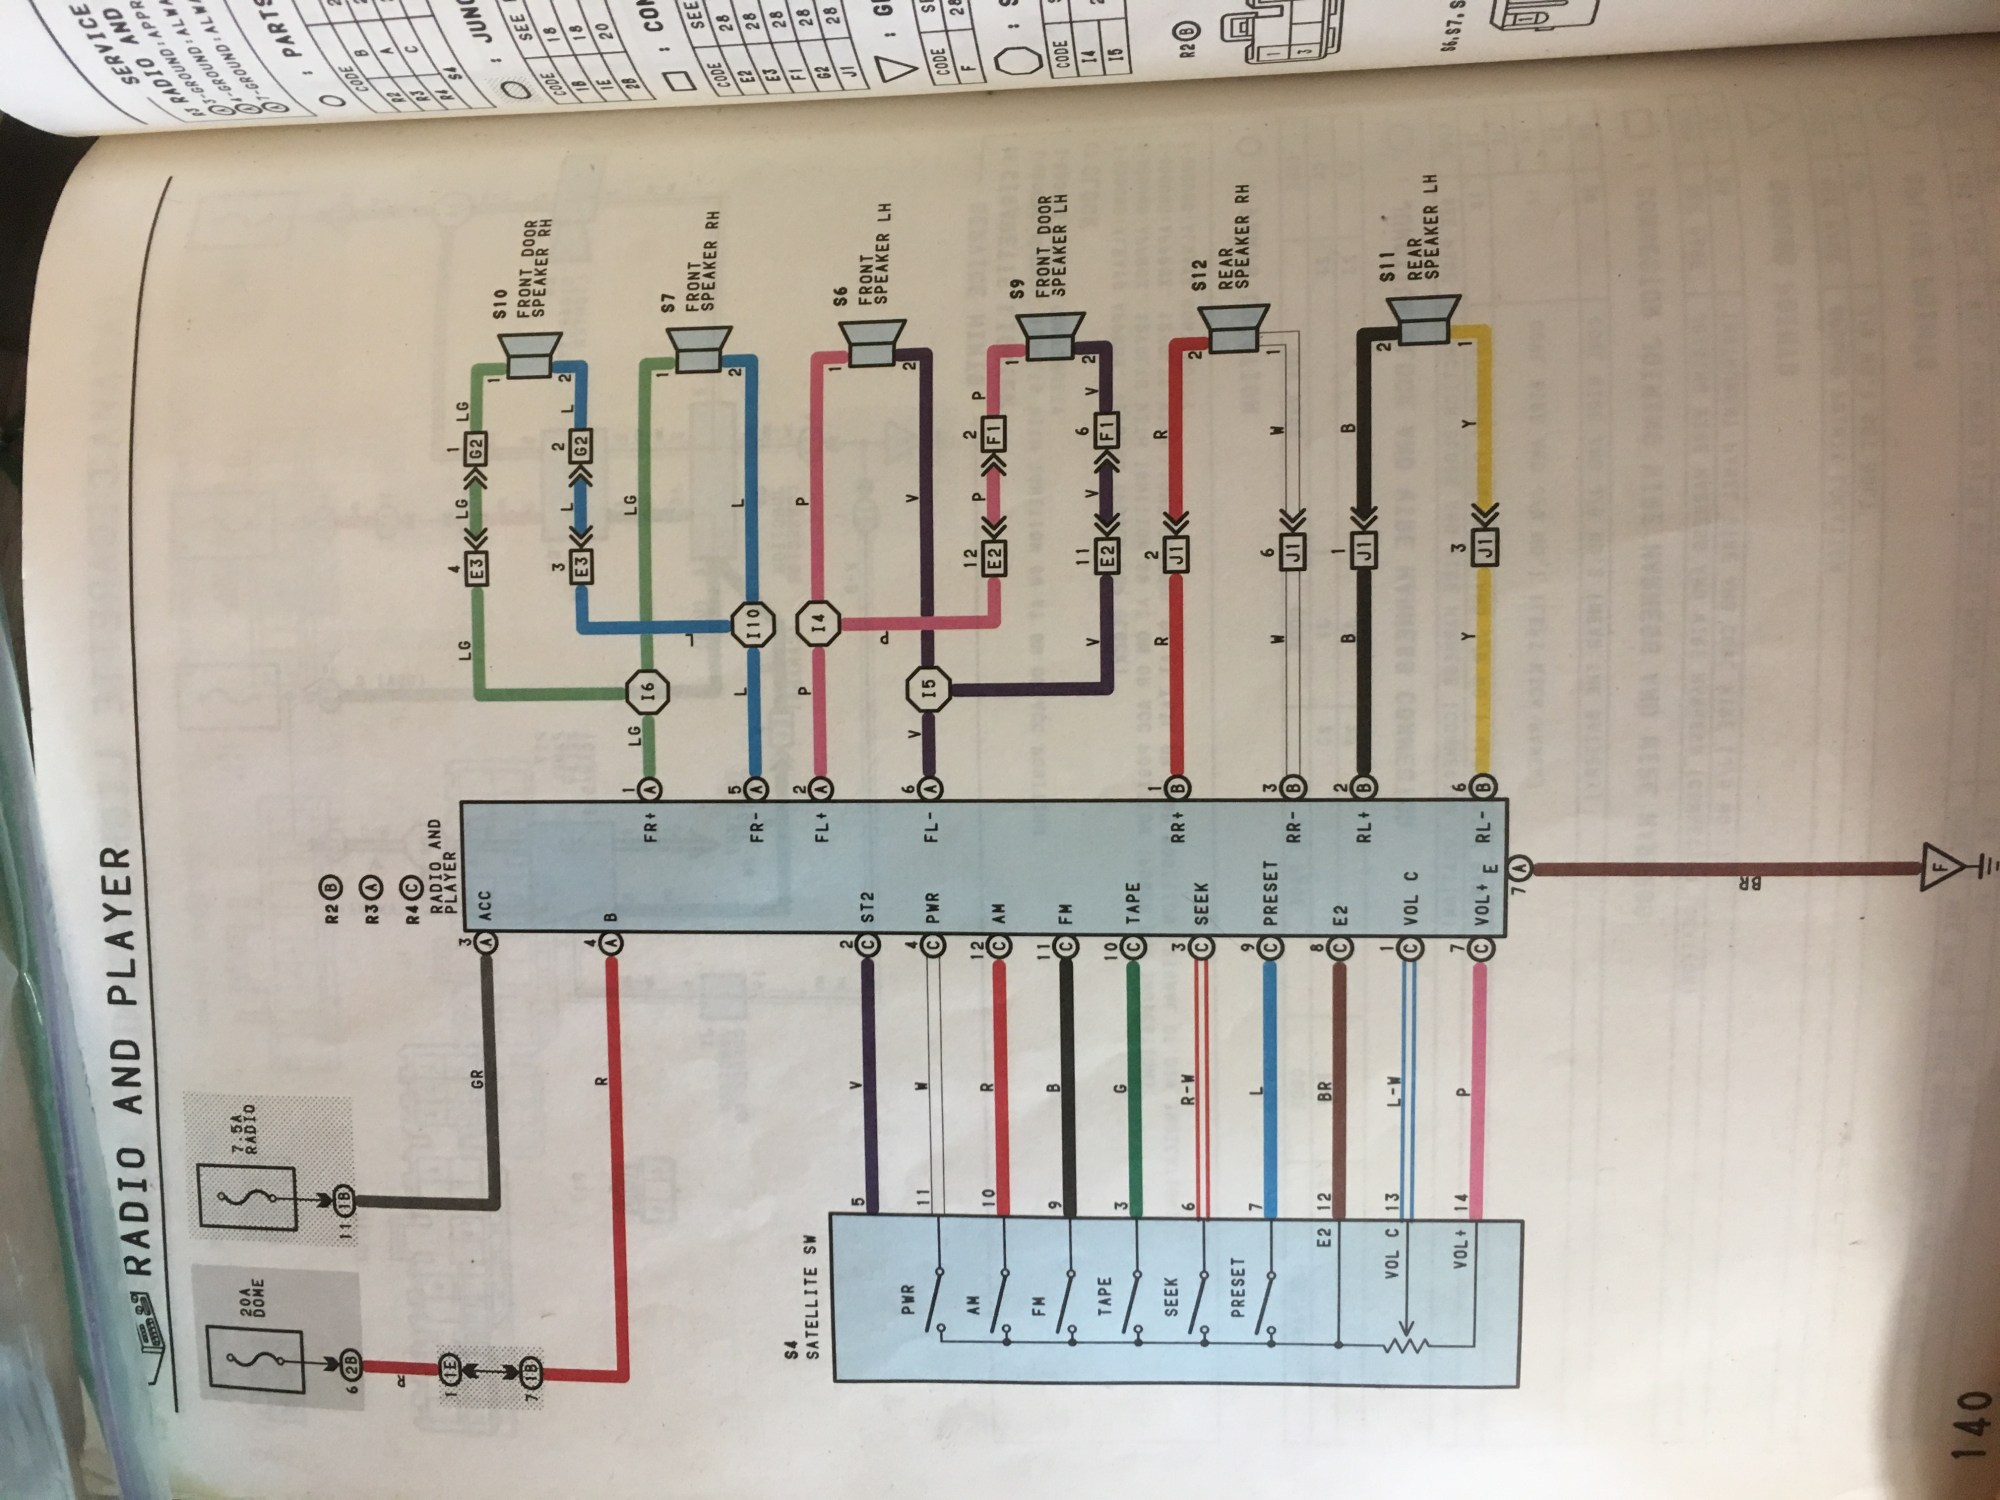 hight resolution of toyota x chassis workshop manual and wiring guide motherload toyota mark 2 jzx90 wiring diagram